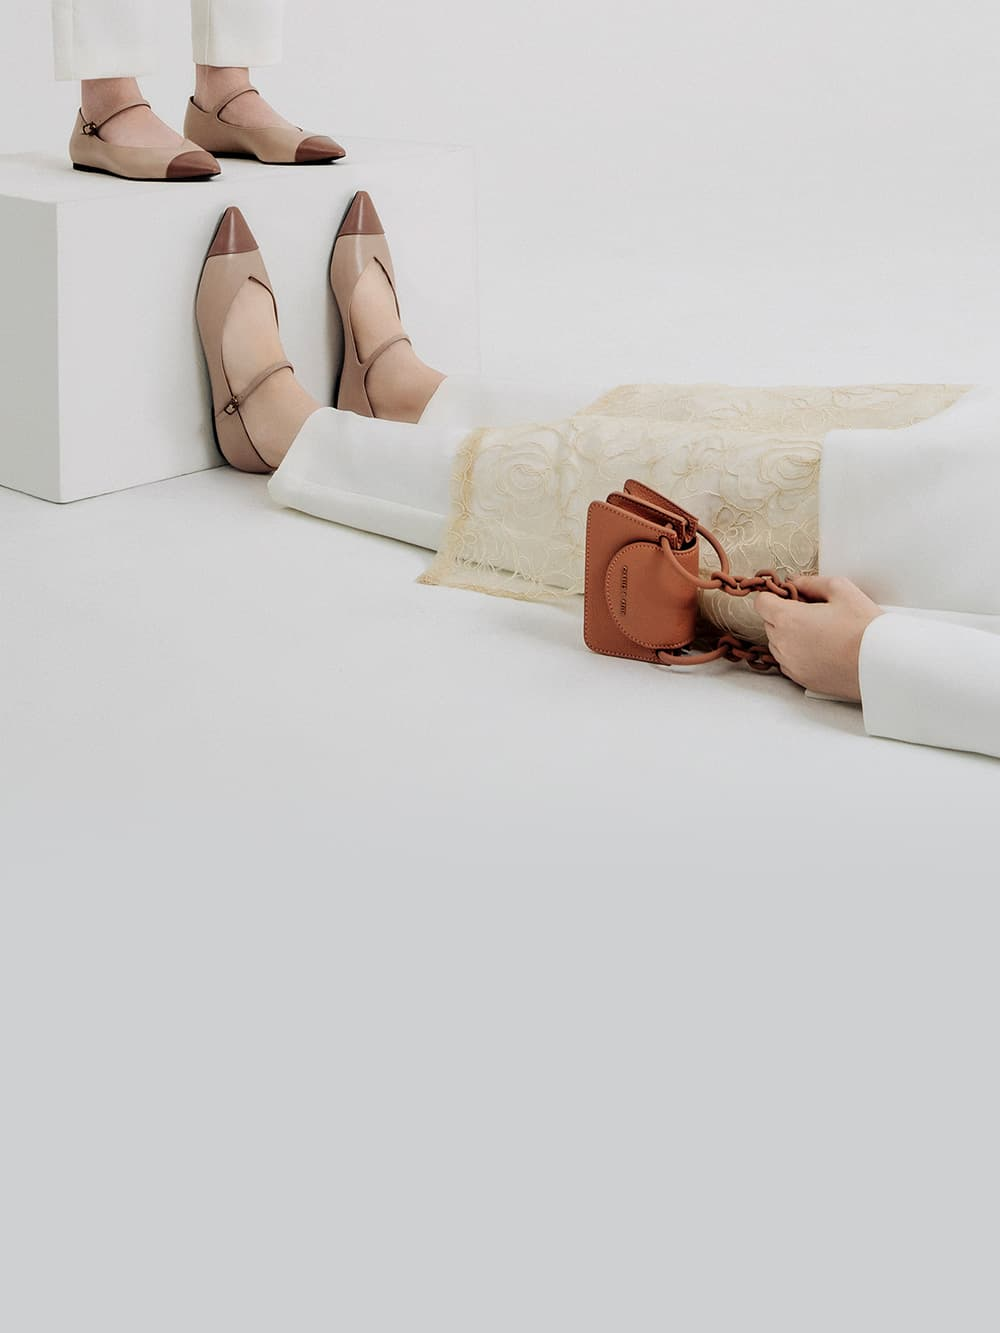 Women's two-tone pointed toe mary jane flats in nude and chunky chain handle mini bag in blush - CHARLES & KEITH